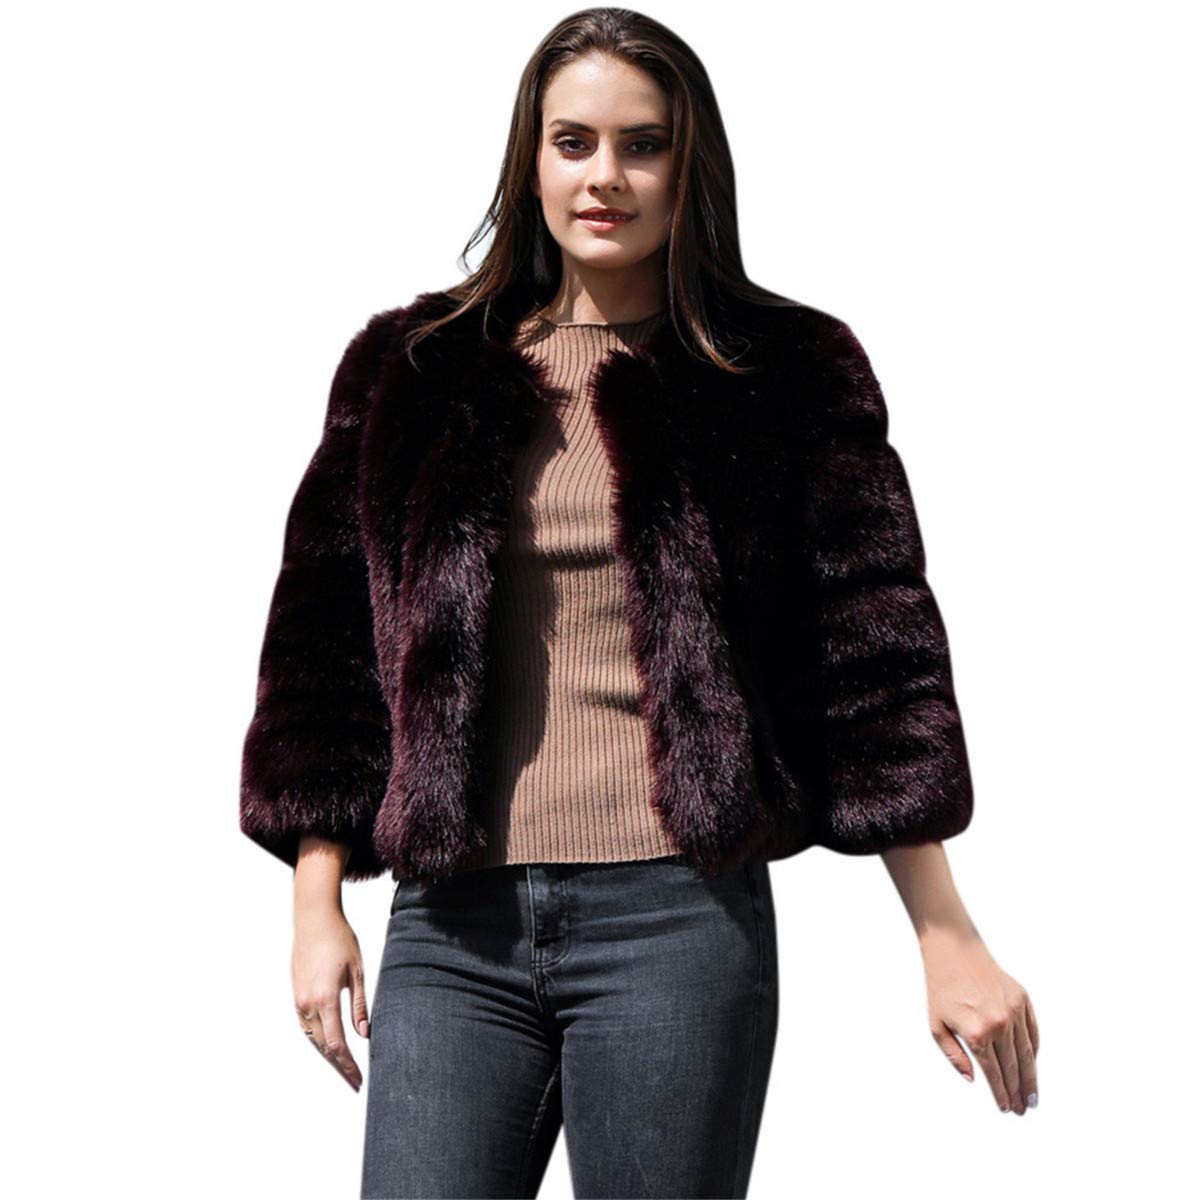 Thenxin Women's Faux Fur Cardigan Outerwear Vintage Fluffy Fuzzy Cropped Jacket Coat(Brown,M) by Thenxin